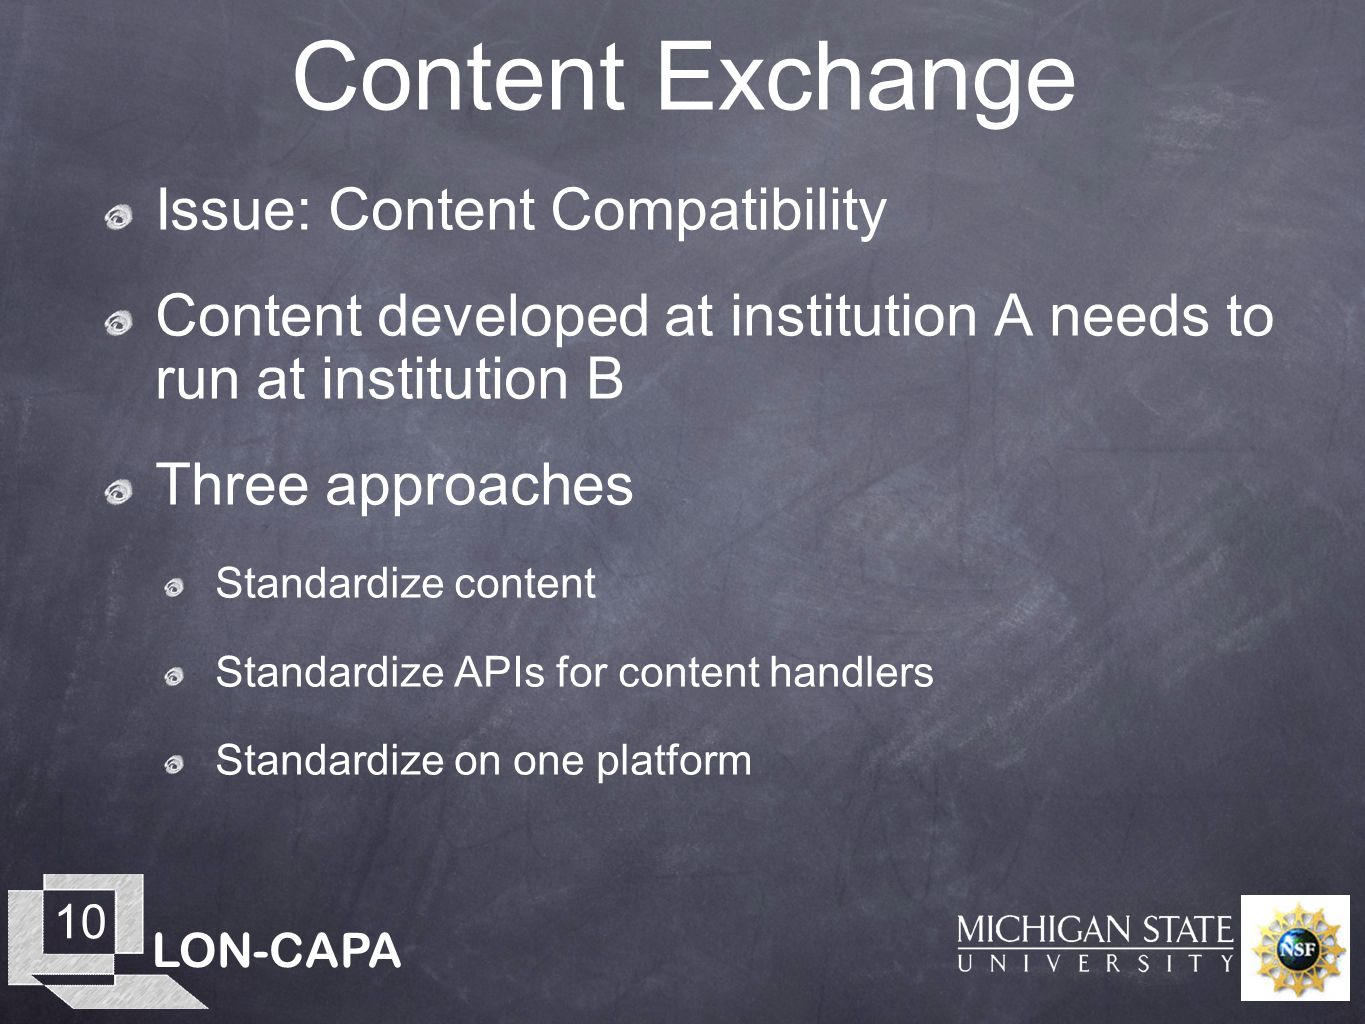 LON-CAPA 10 Content Exchange Issue: Content Compatibility Content developed at institution A needs to run at institution B Three approaches Standardize content Standardize APIs for content handlers Standardize on one platform